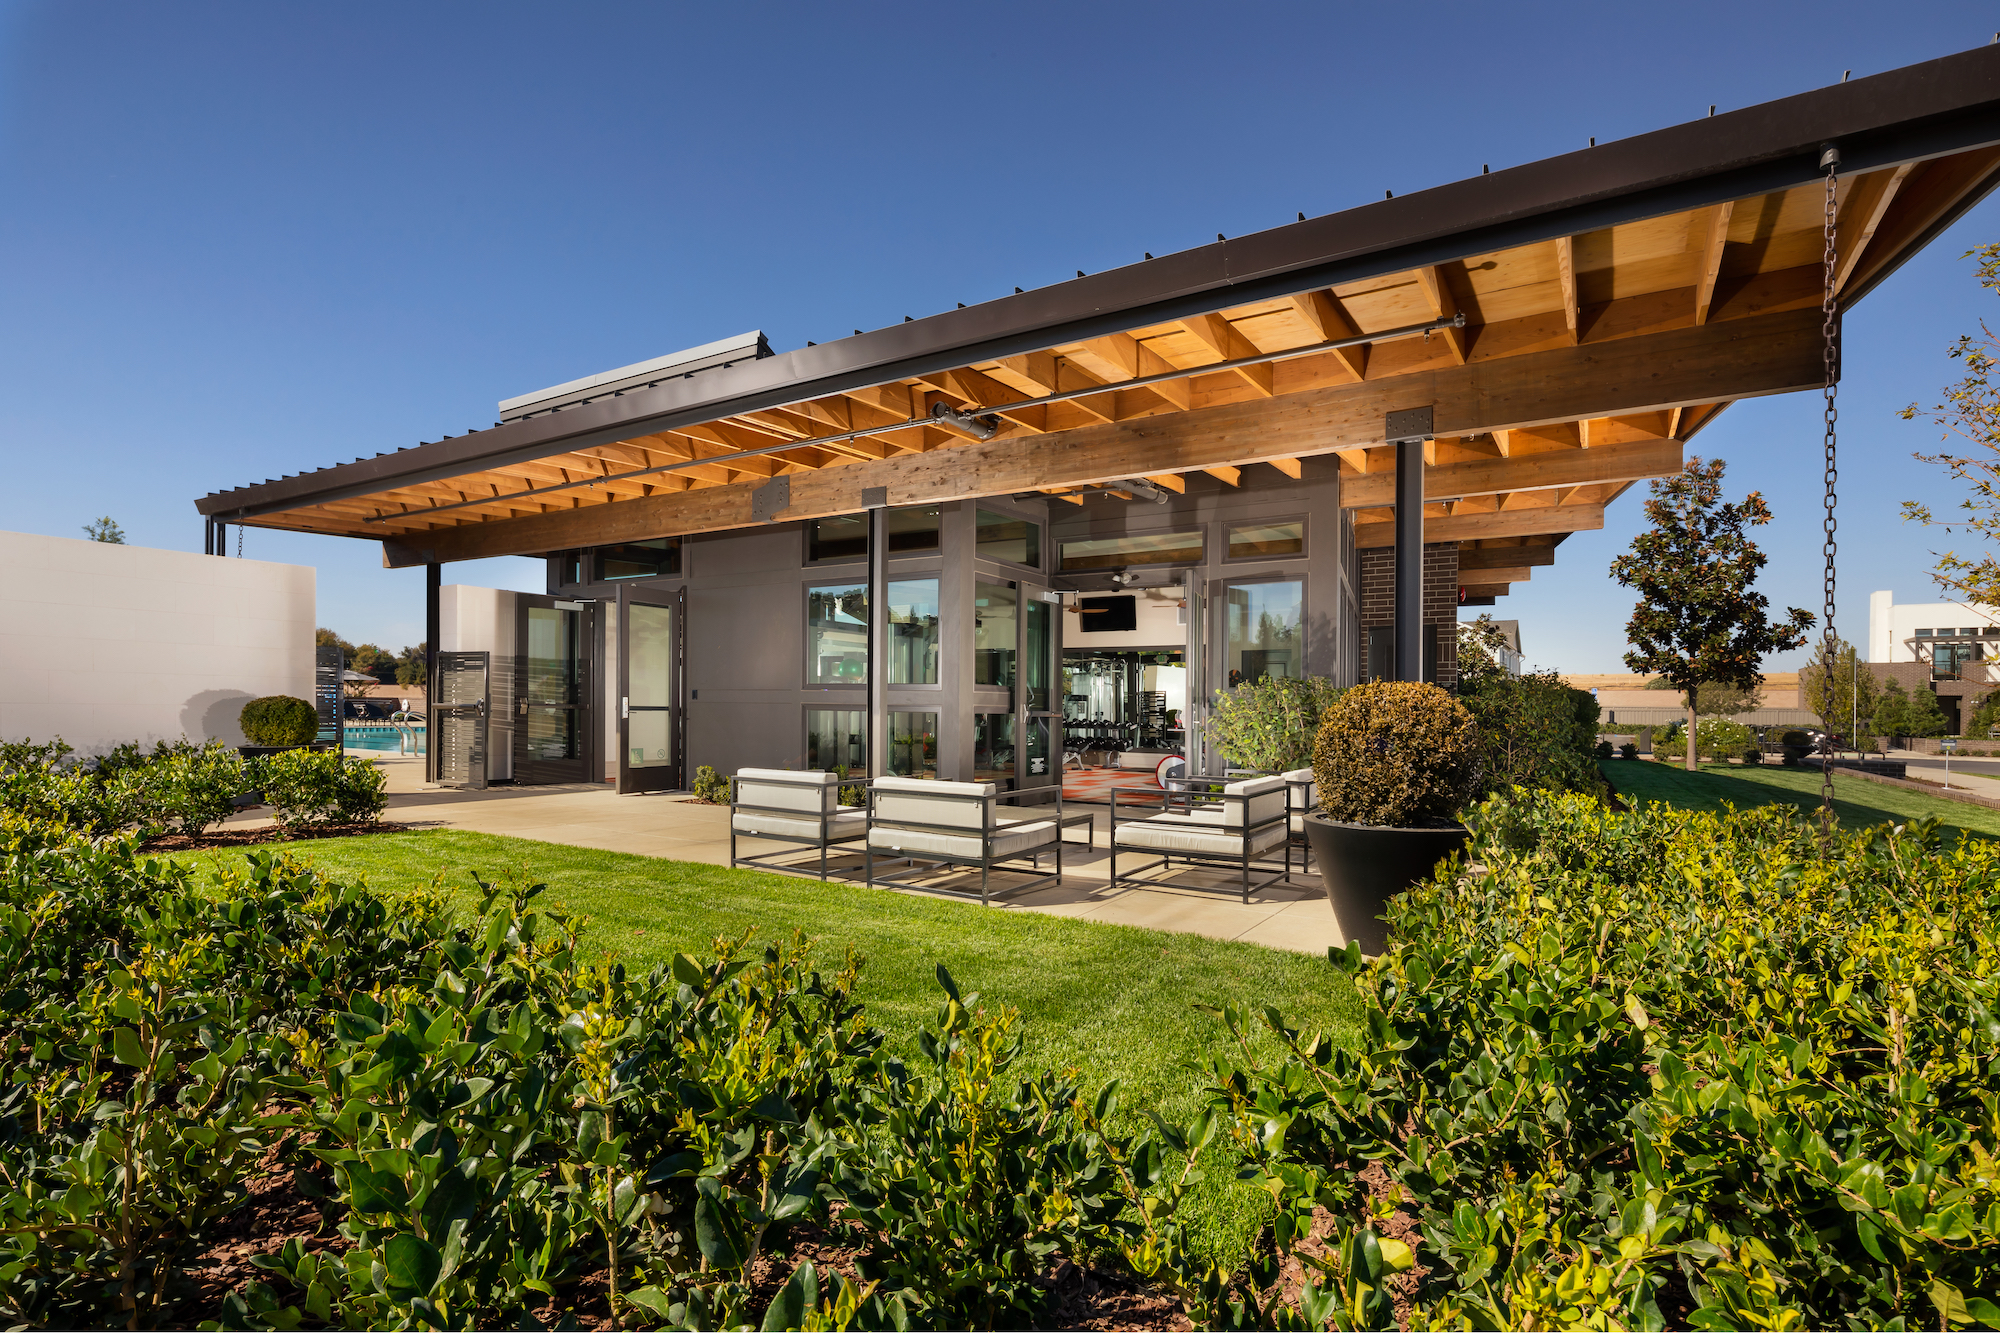 Mckinley village clubhouse mogavero architects for Architecture firms sacramento